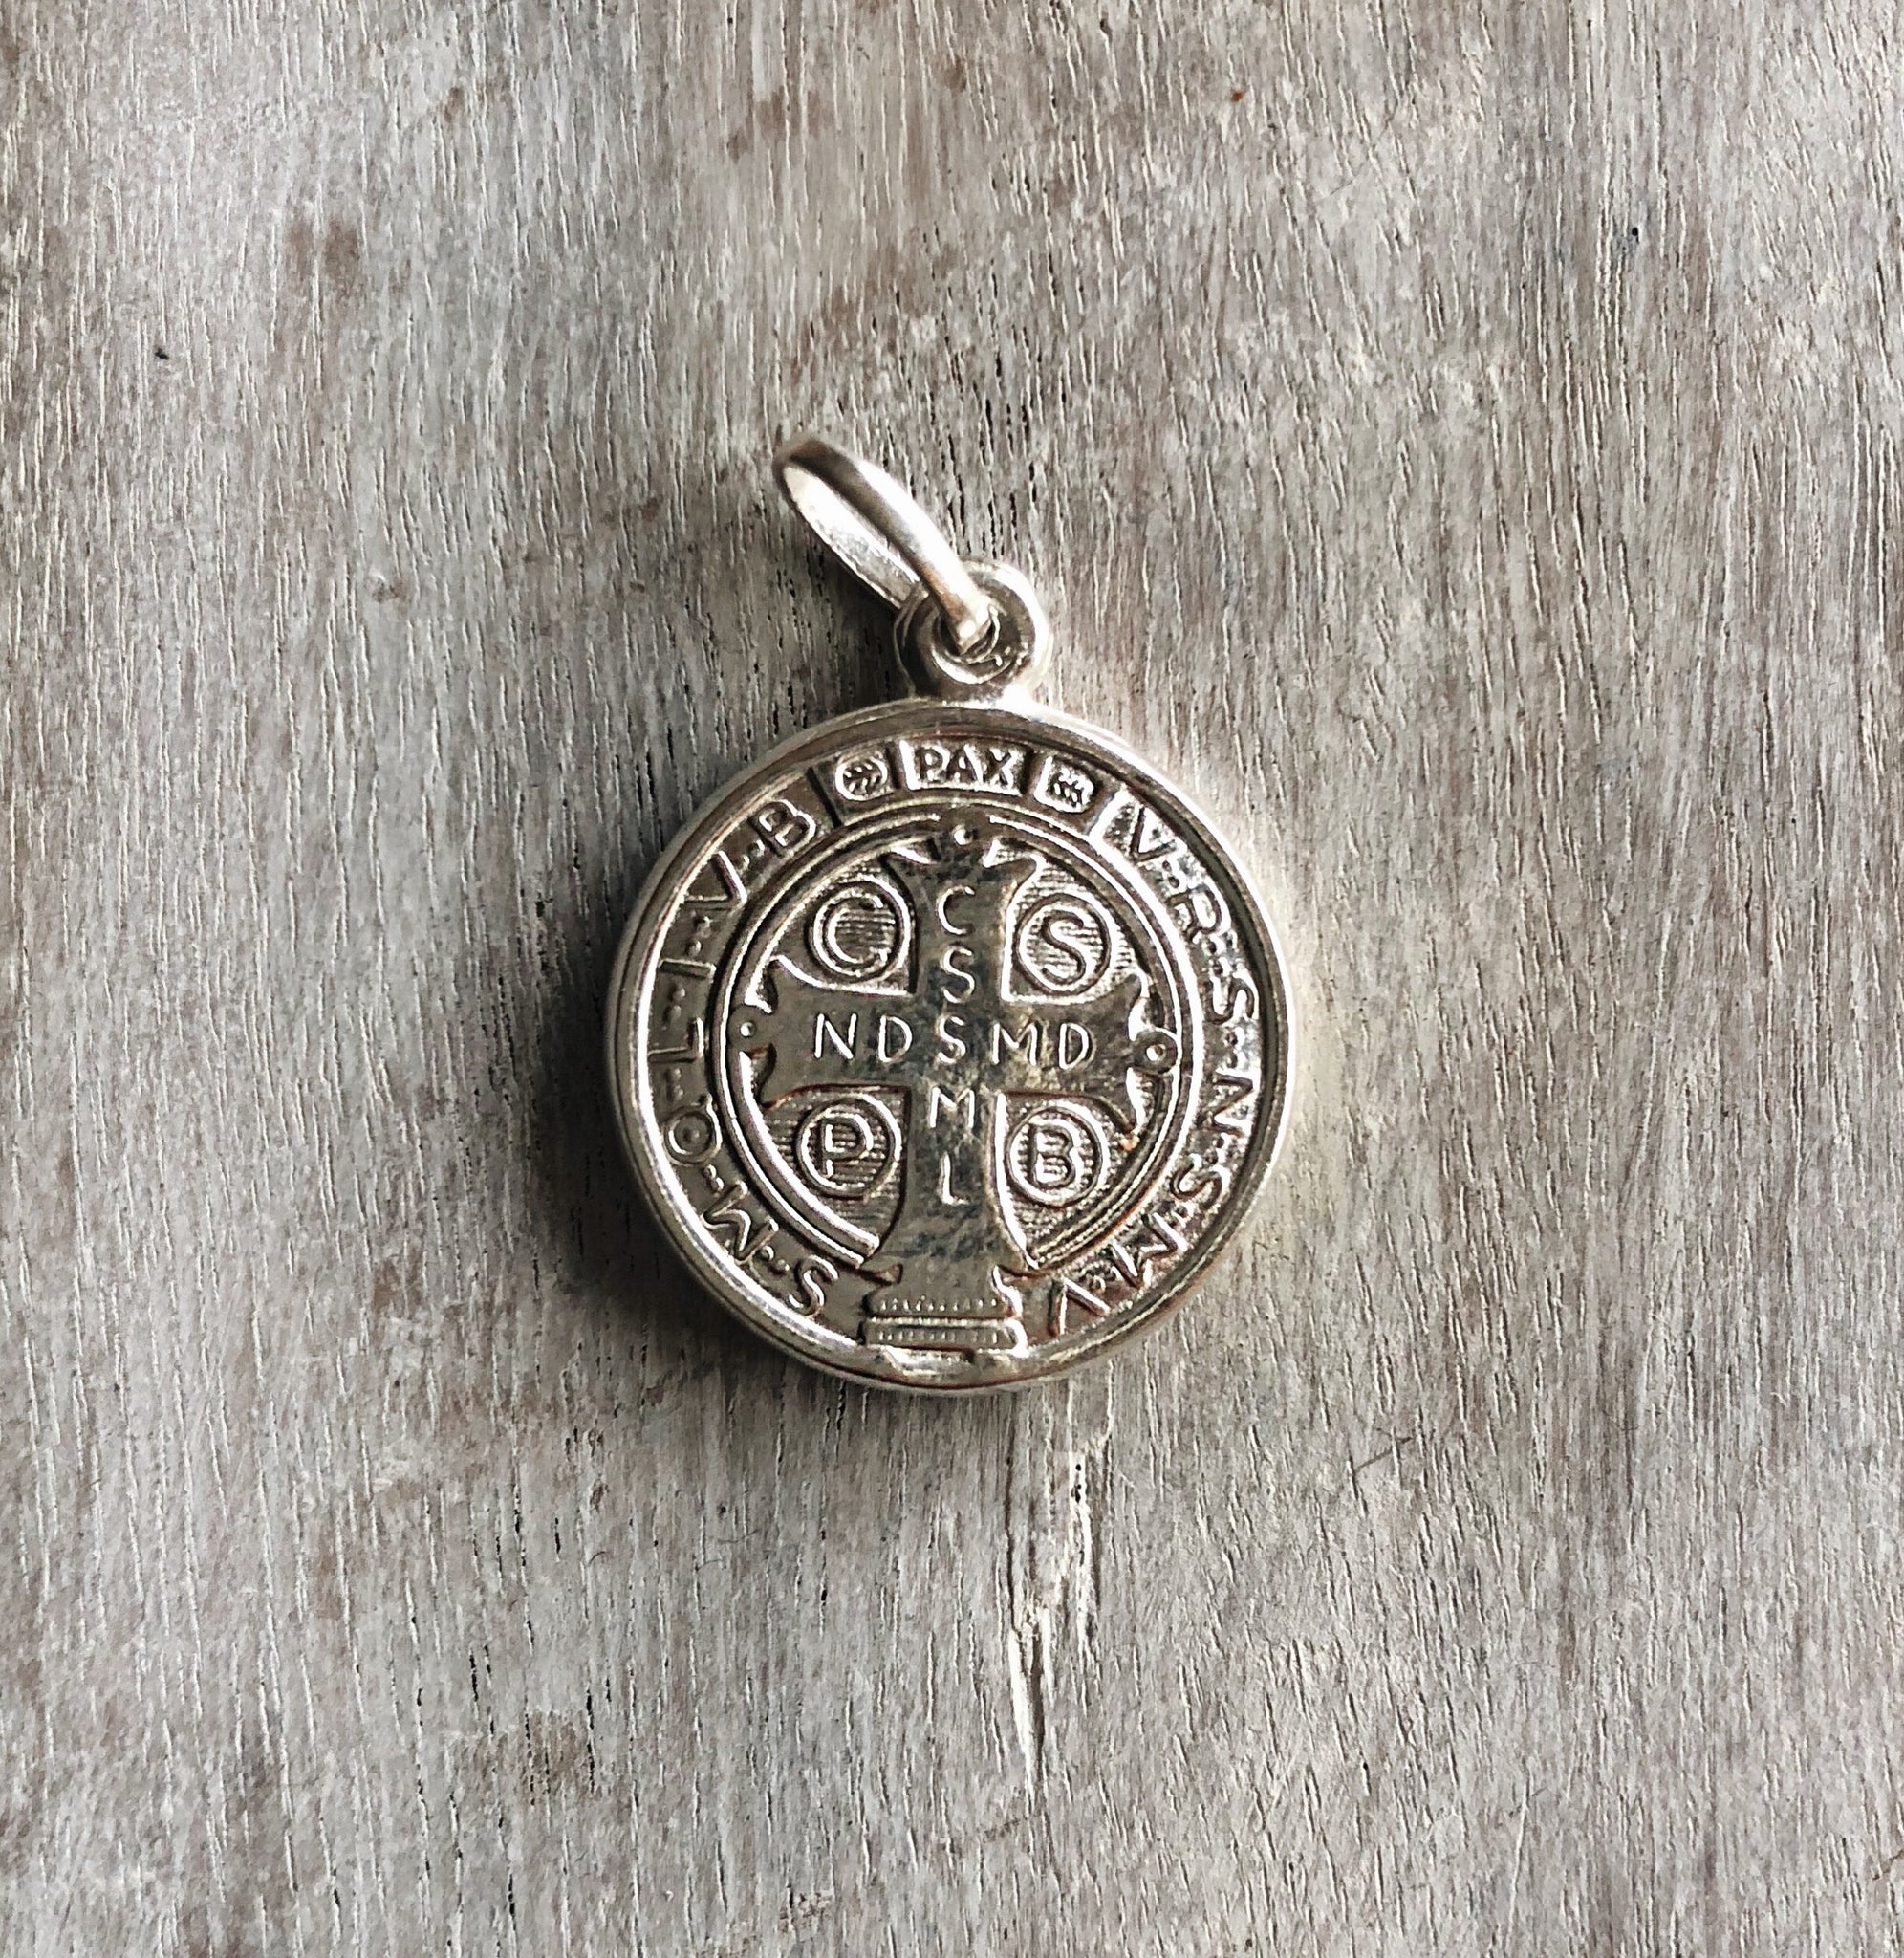 benito medallion benedict pin san first catholic gold necklace medal saint st christian religious communion vintage french gift jewelry plated